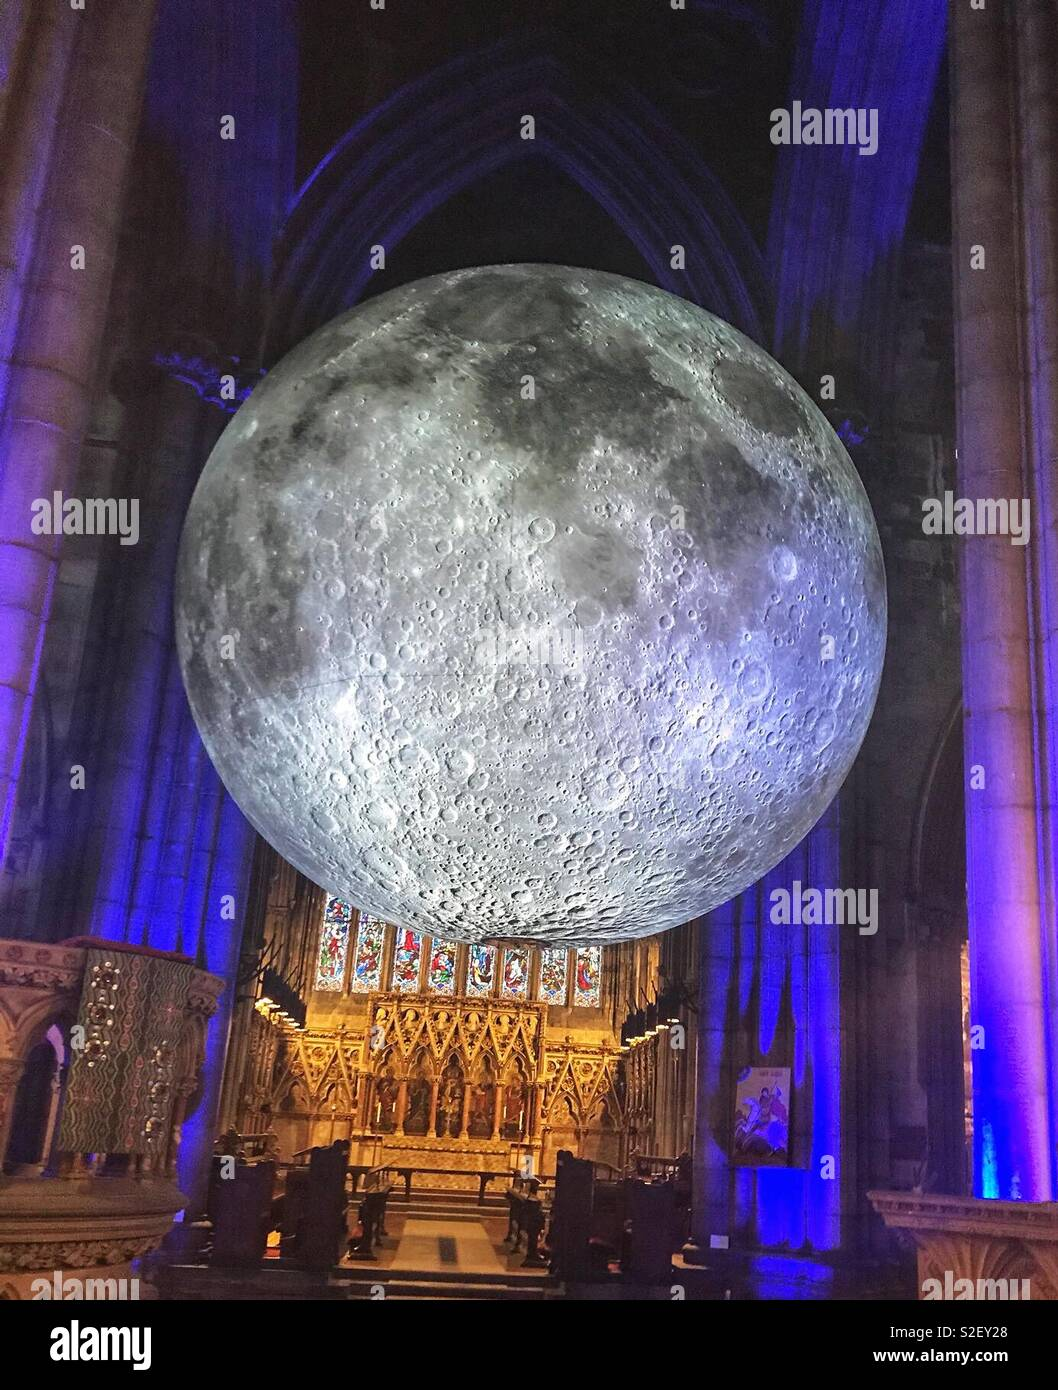 Museum of the moon at Doncaster minster - Stock Image